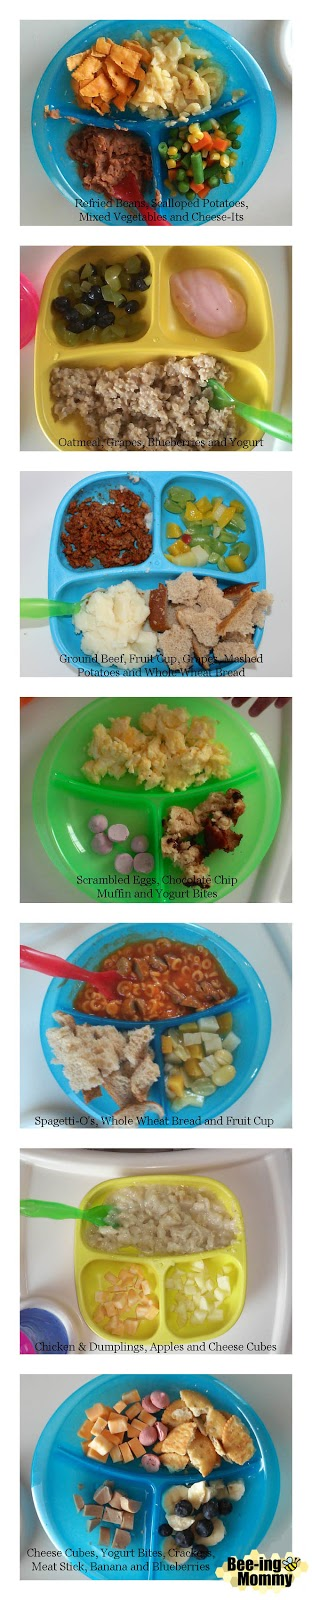 Bee ing mommy blog food ideas feeding a one year old feeding a one year old toddler meal ideas one year old food ideas forumfinder Choice Image